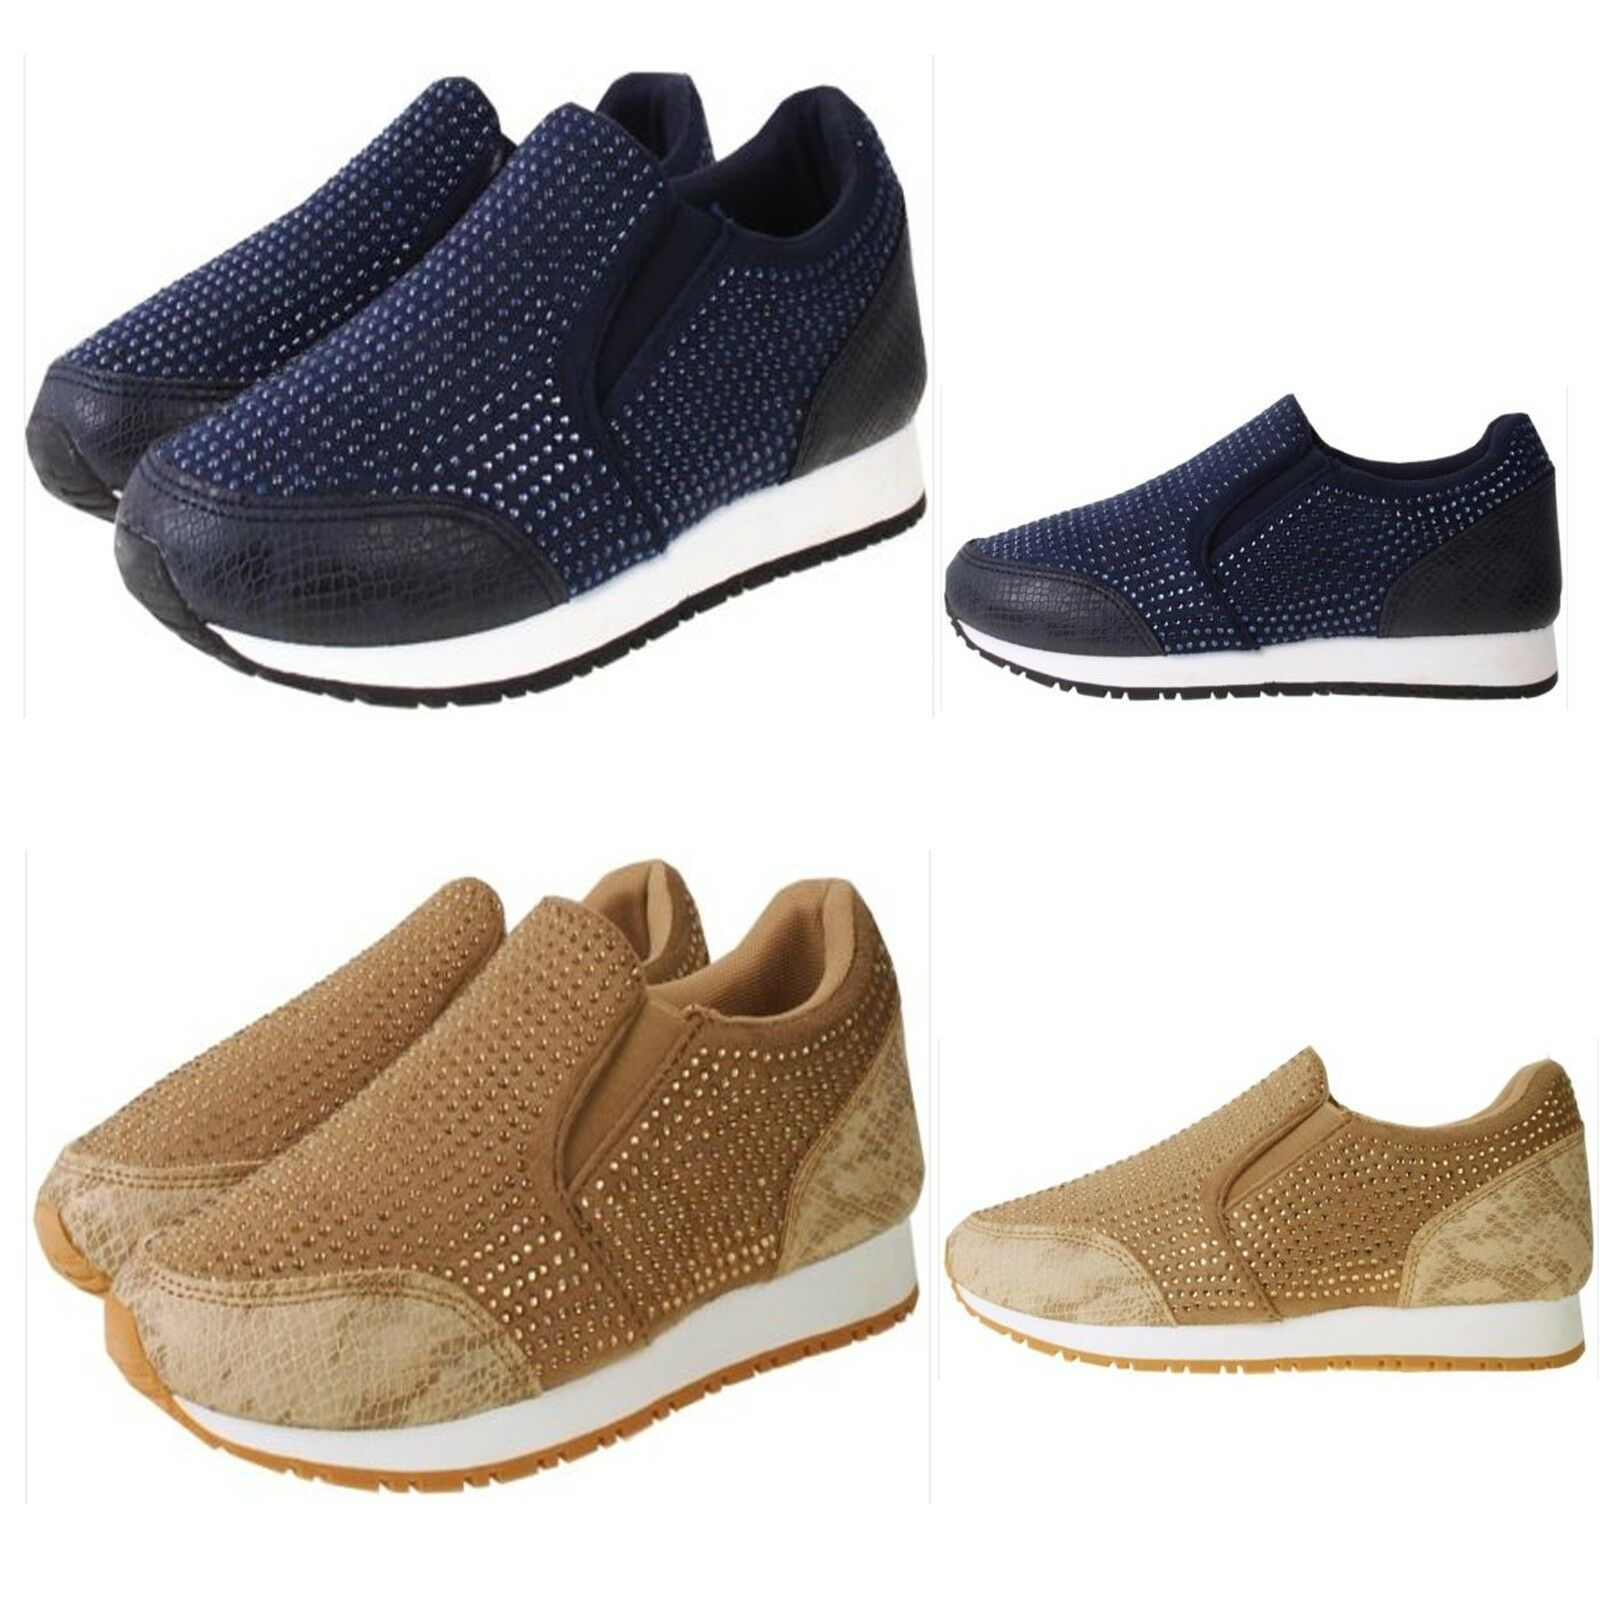 New Womens Slip On Trainers Casual Shoes Walking Lightweight Diamante Pumps Shoes Casual size a8e11b